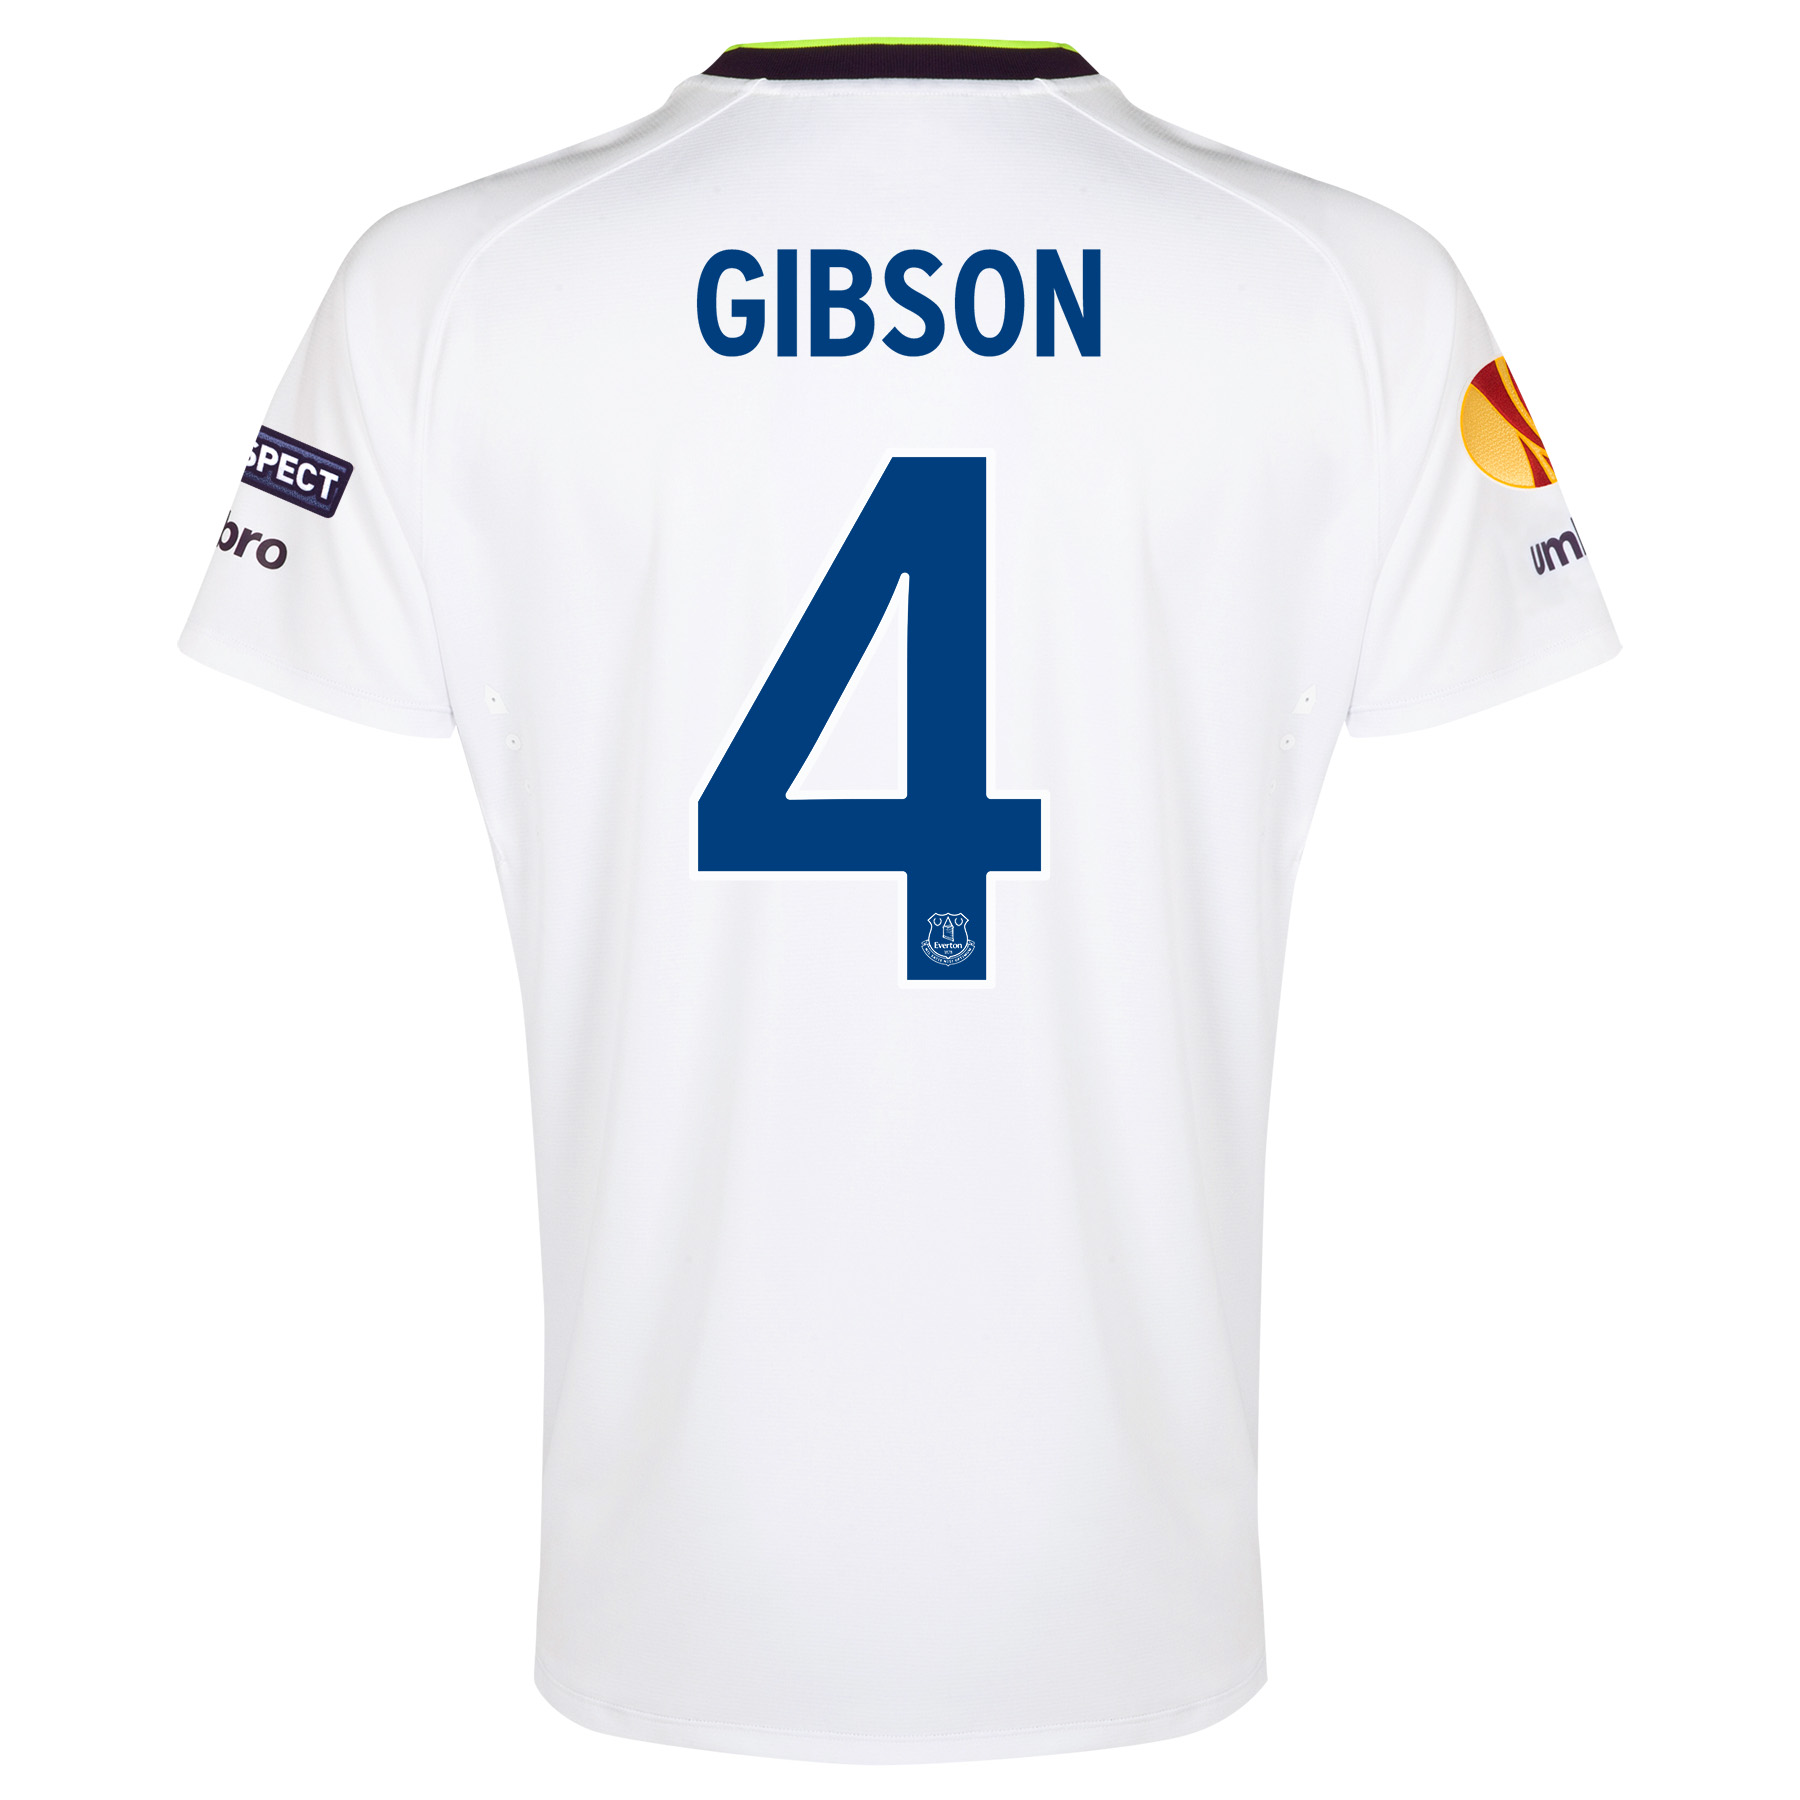 Everton UEFA Europa League 3rd Shirt 2014/15 - Junior with Gibson 4 printing